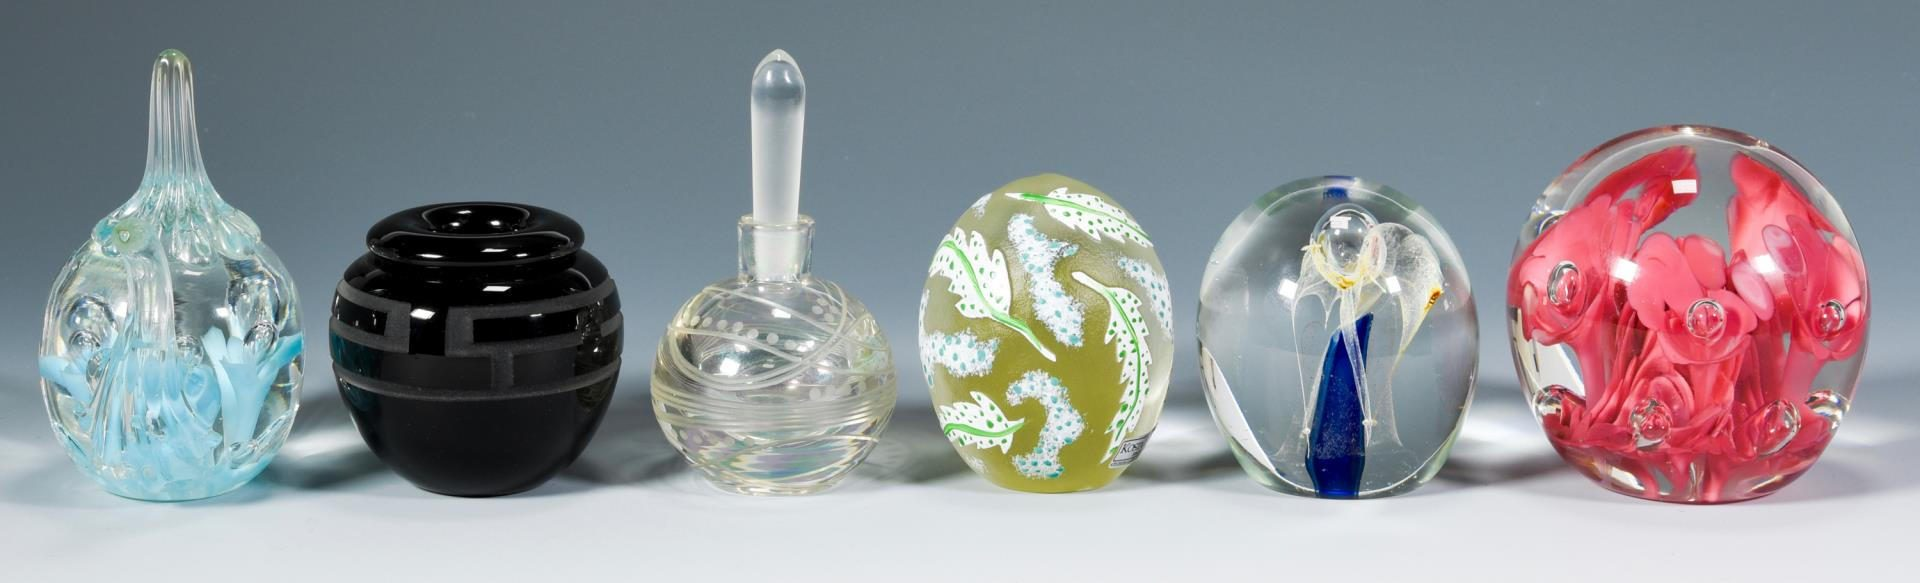 Lot 26: Group of Contemporary Art Glass, incl. St. Clair